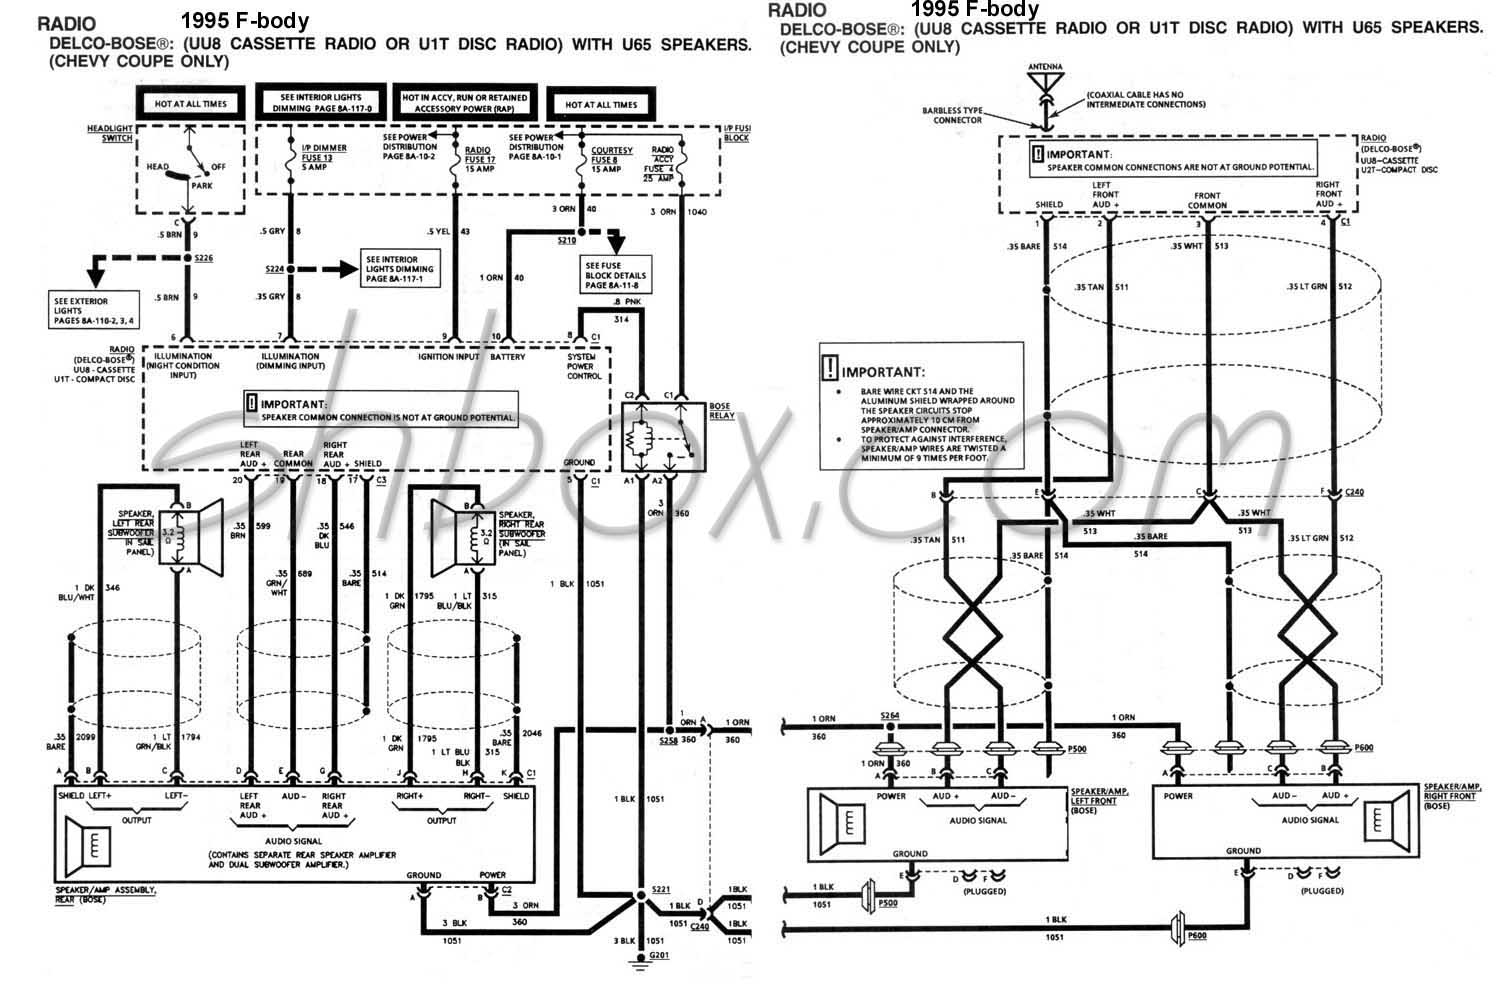 96 s10 wiring harness diagram 96 chevy s10 ignition wiring diagram 96 discover your wiring wiring diagram 1996 z28 camaro